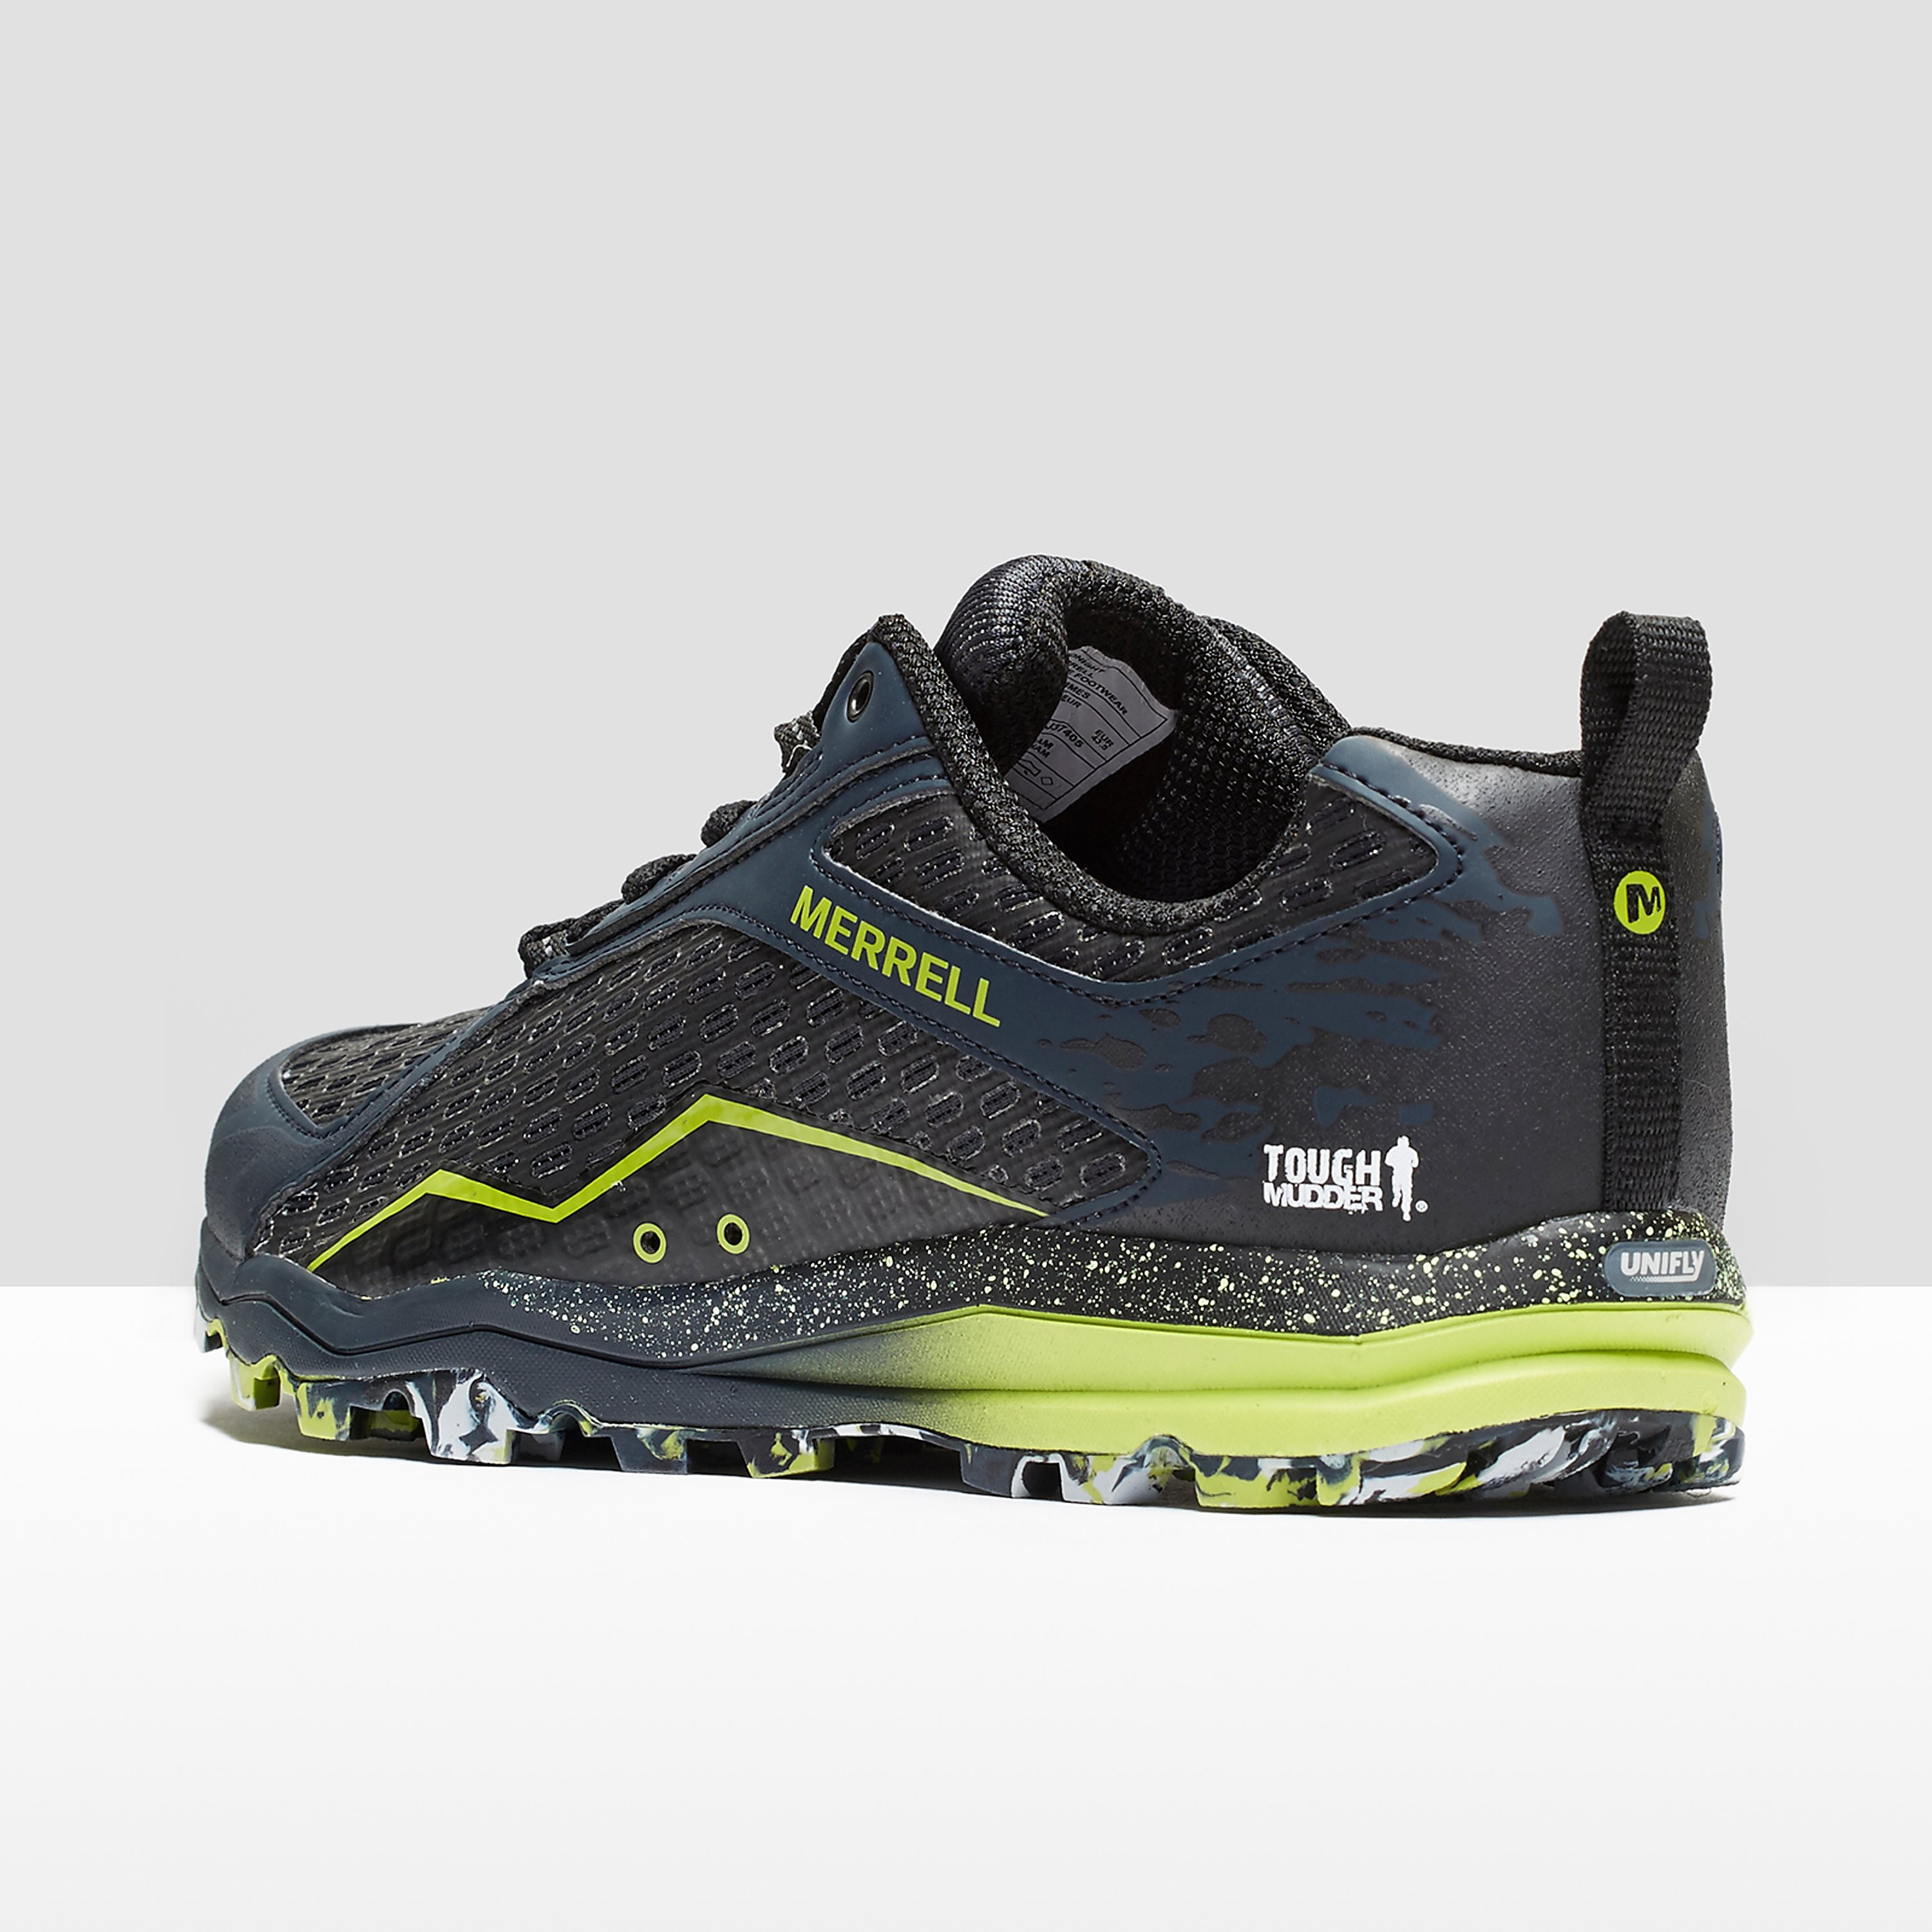 Merrell All Out Crush Tough Mudder Men's Trail Shoes